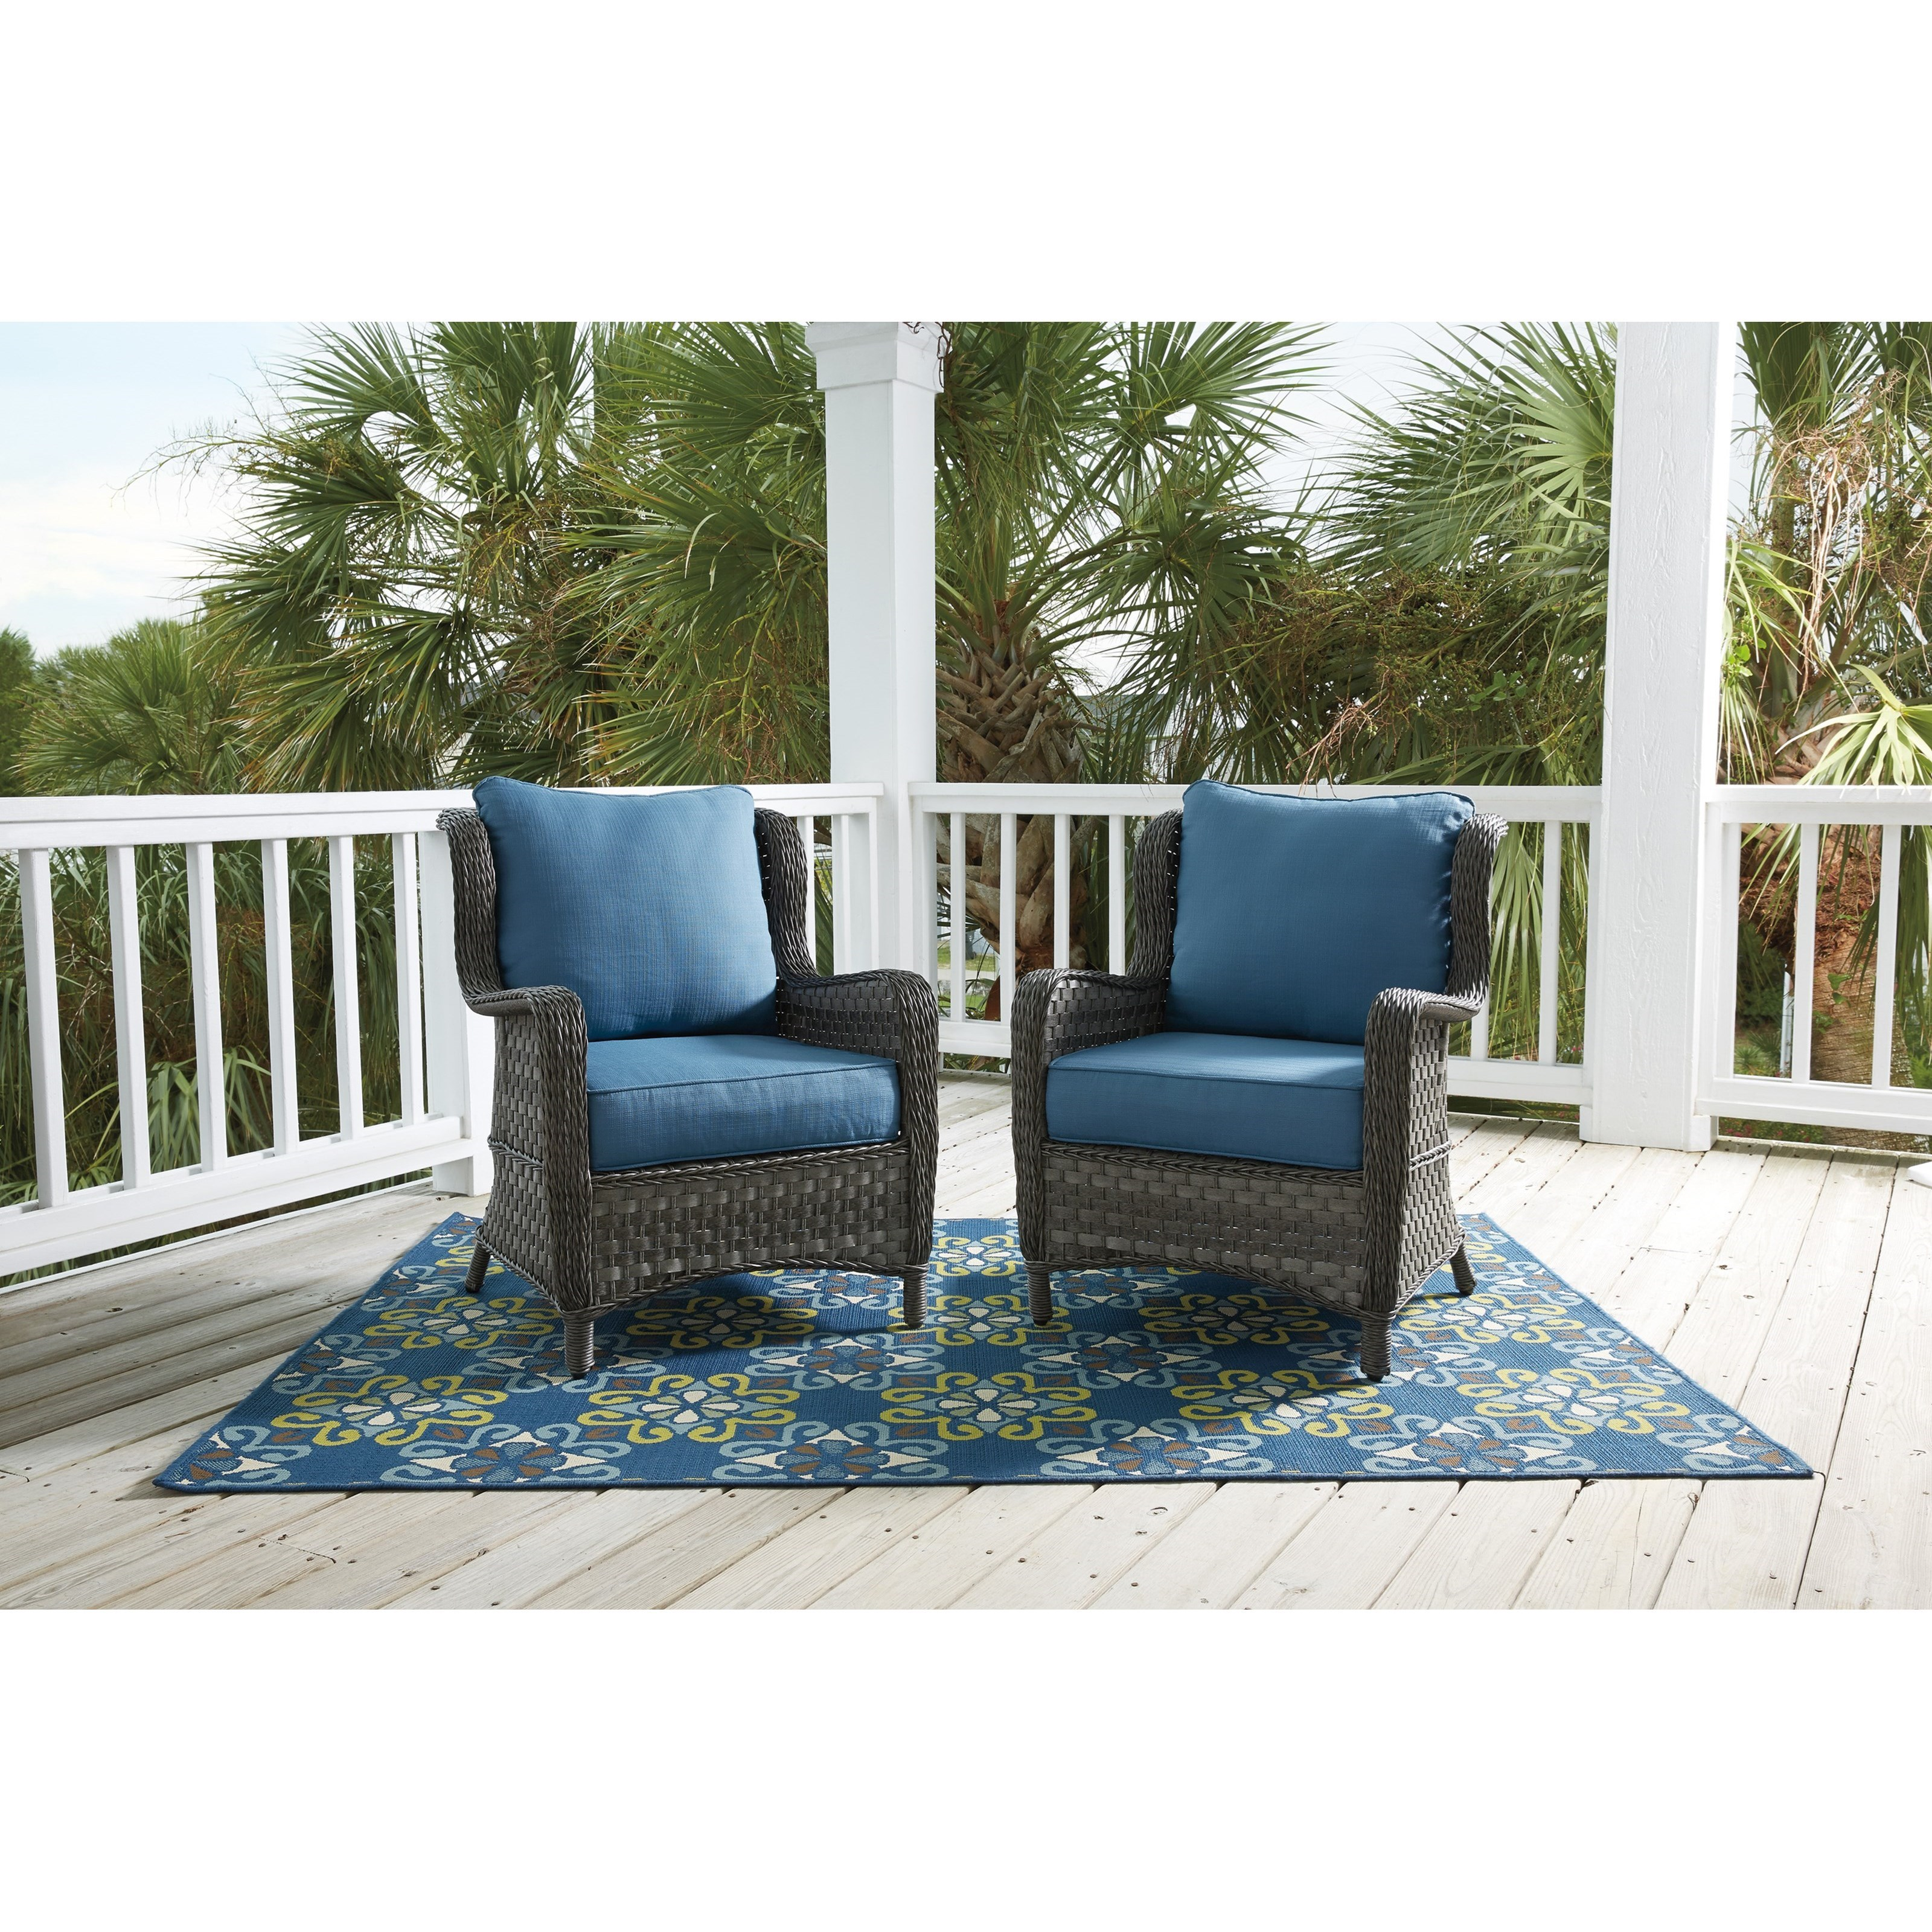 ... Signature Design By Ashley Abbots CourtSet Of 2 Outdoor Lounge Chairs  W/ Cushion ...